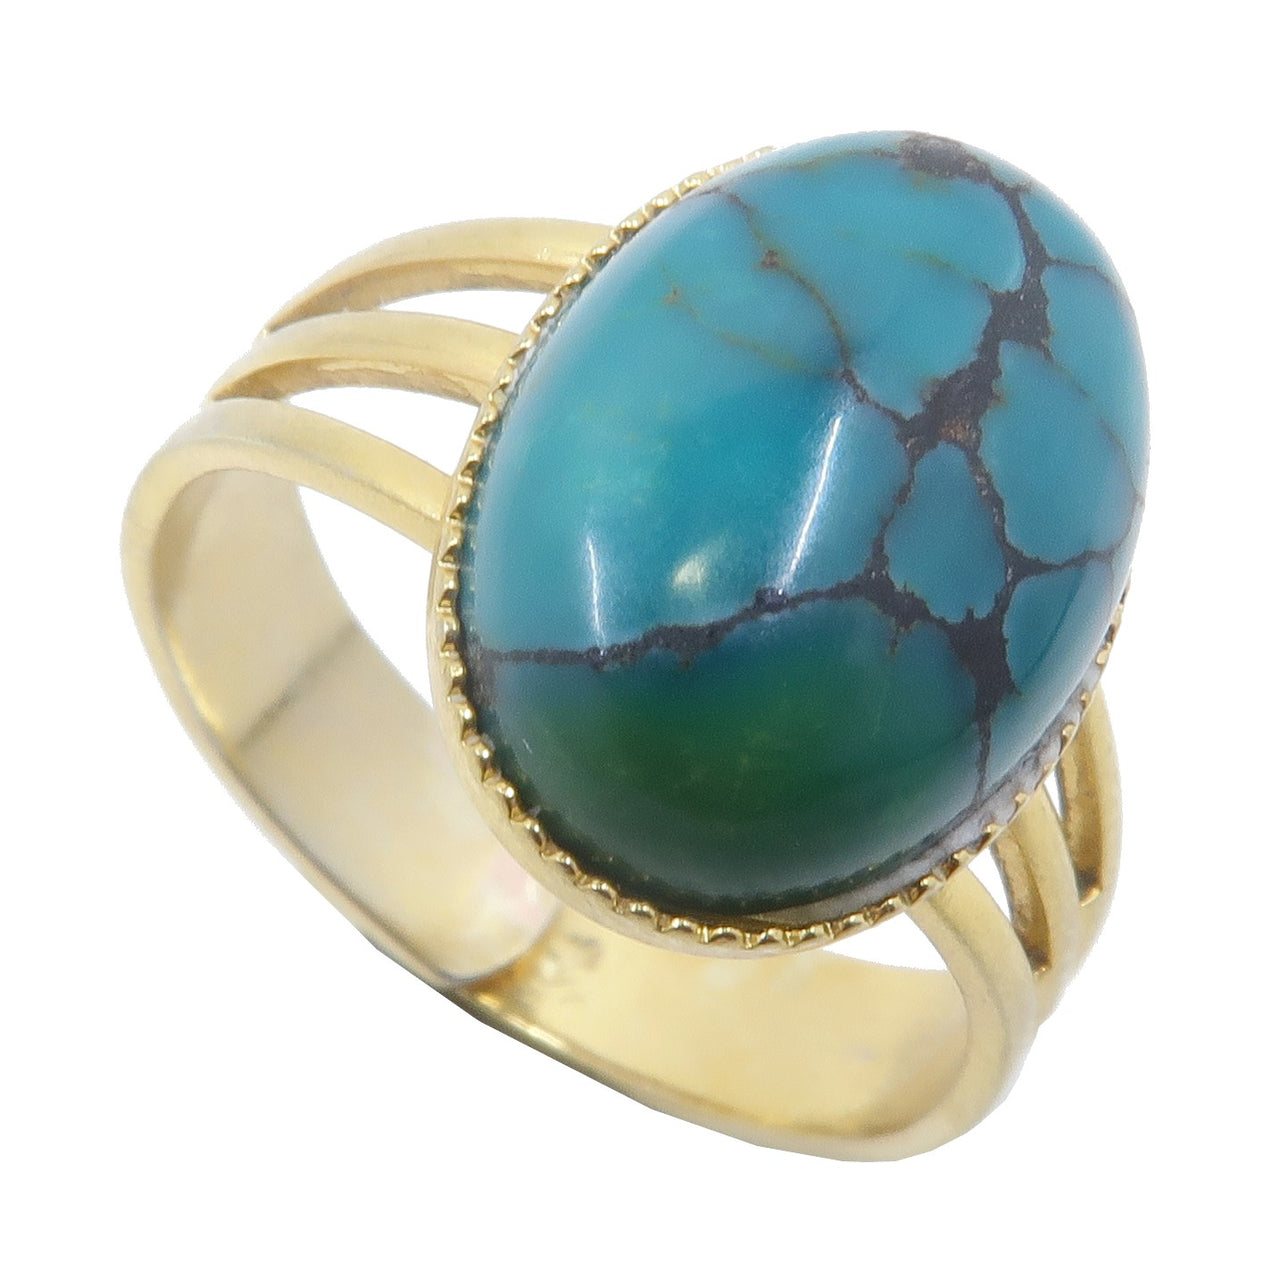 Turquoise Ring 4-10 Boutique Blue Green Gemstone Oval Adjustable B01 (Gold)